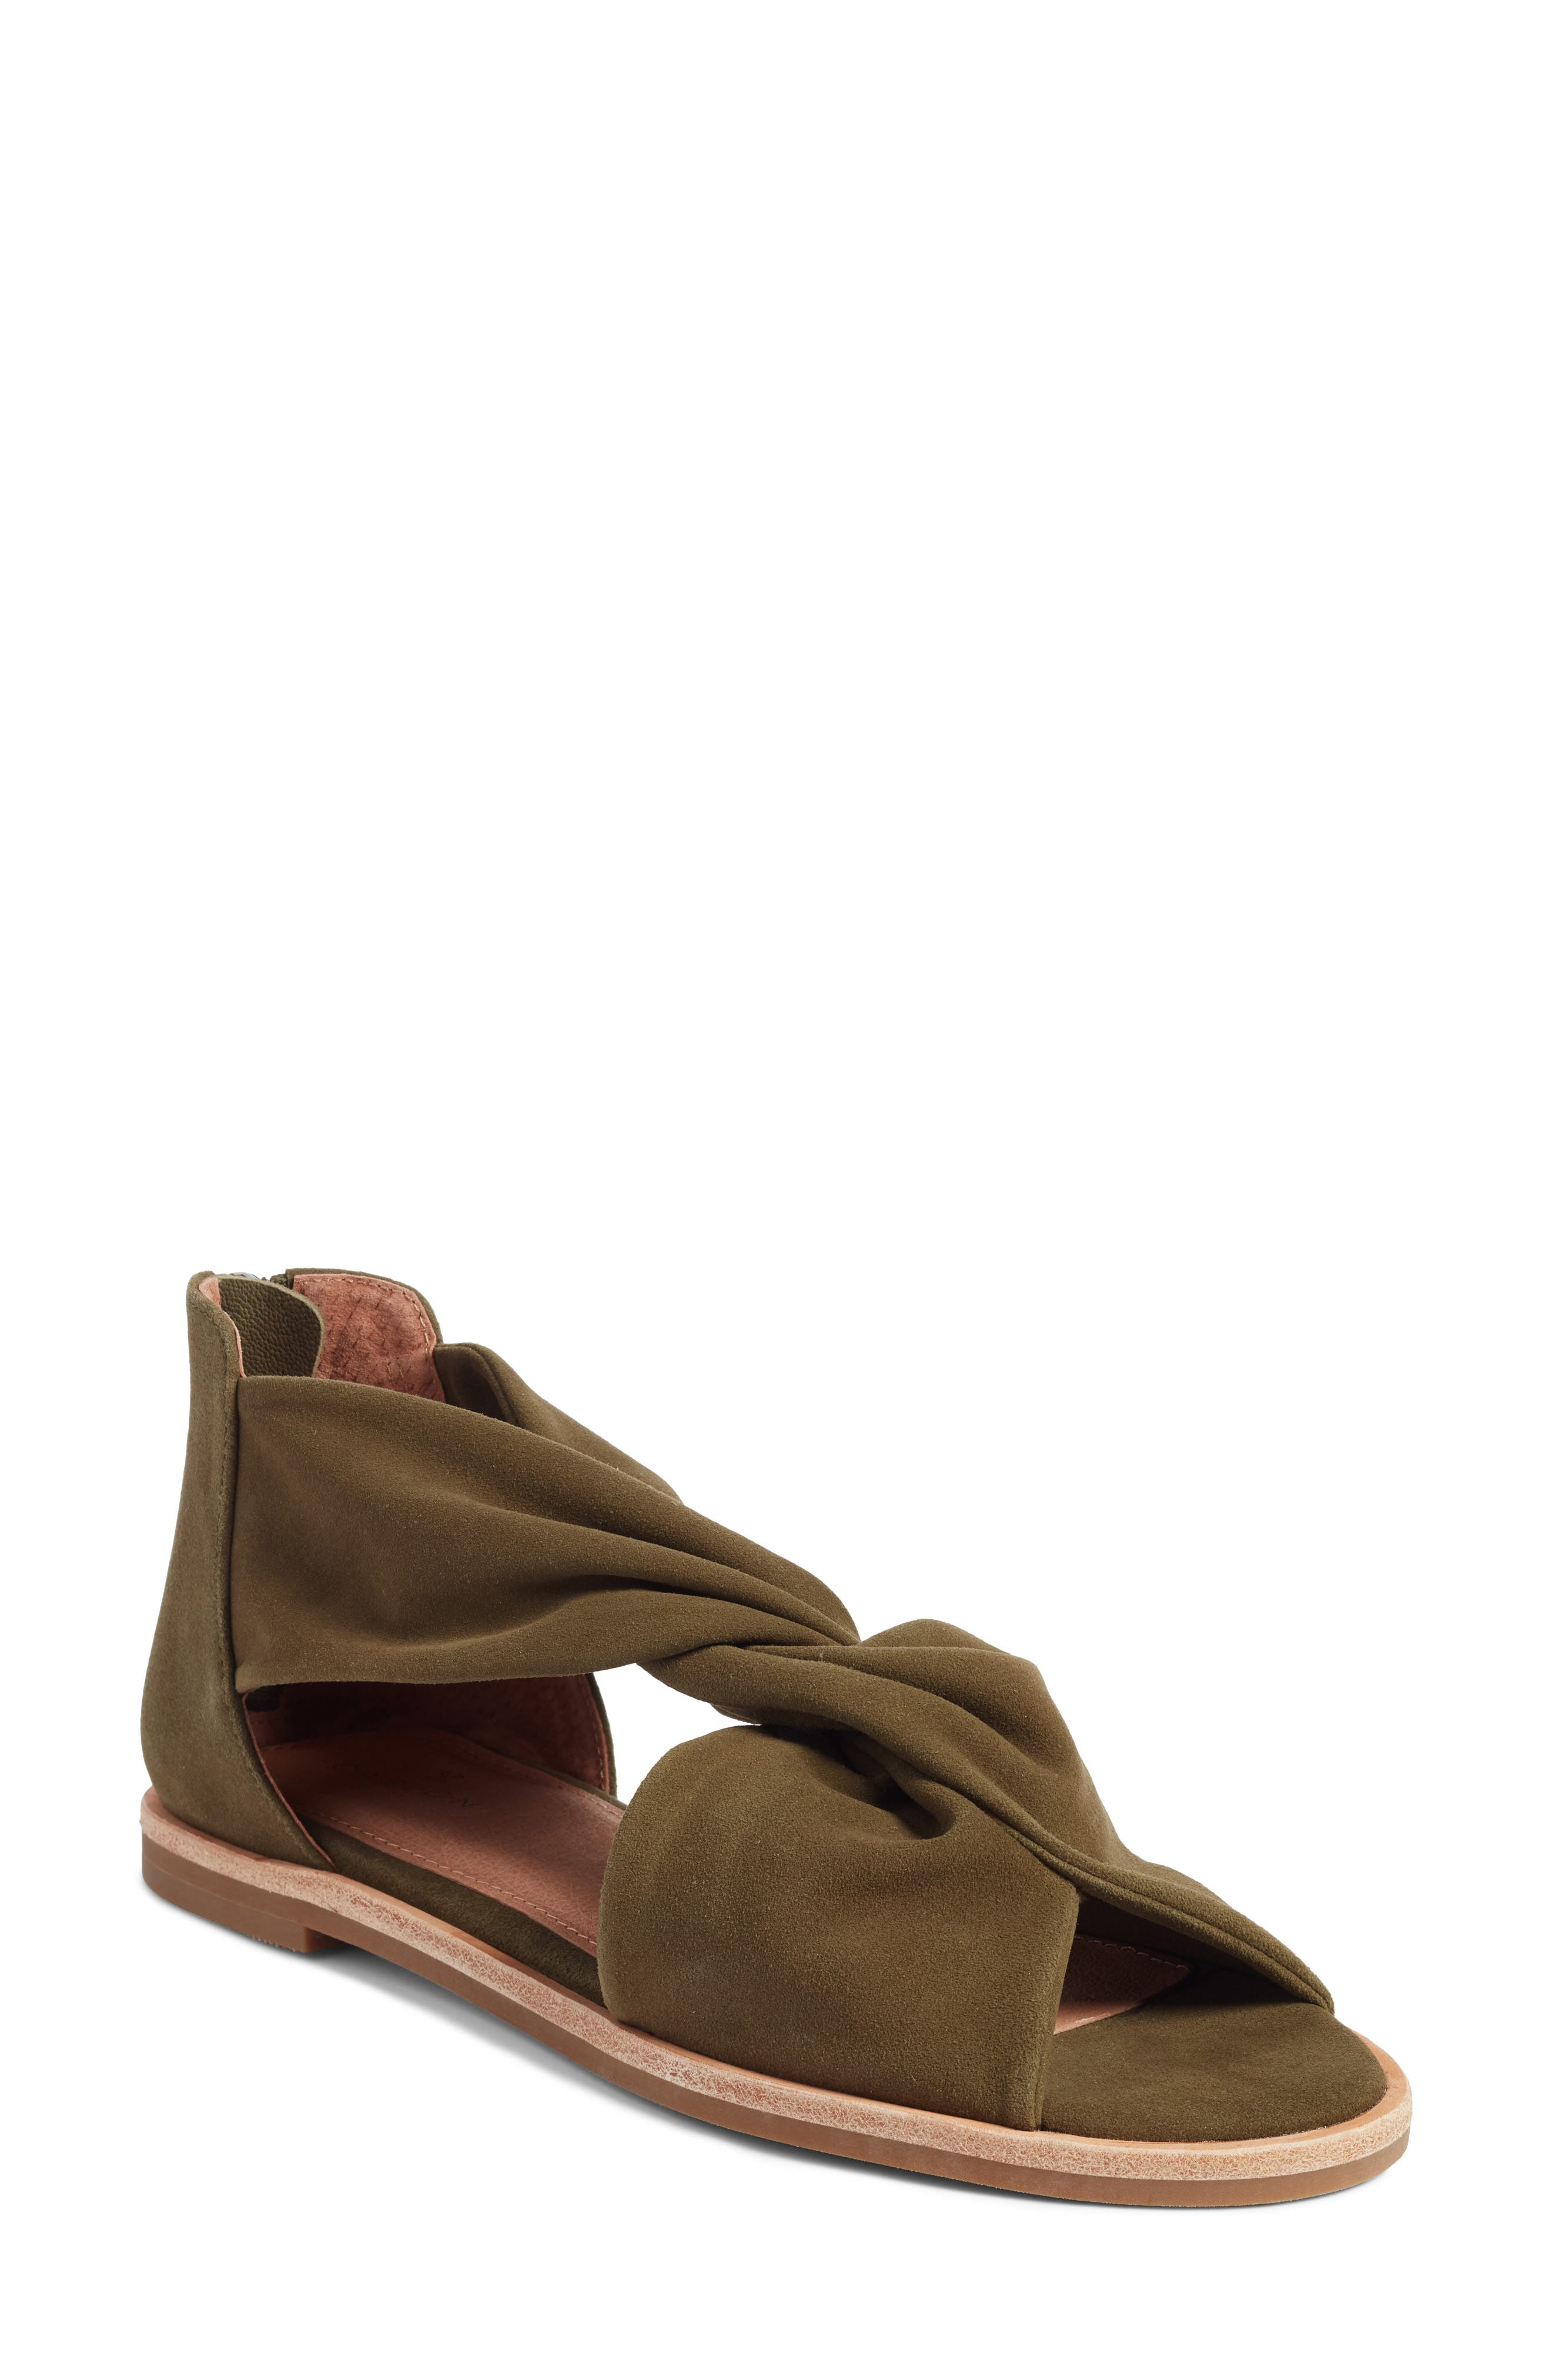 Maxwell Sandal,                             Main thumbnail 1, color,                             Olive Suede